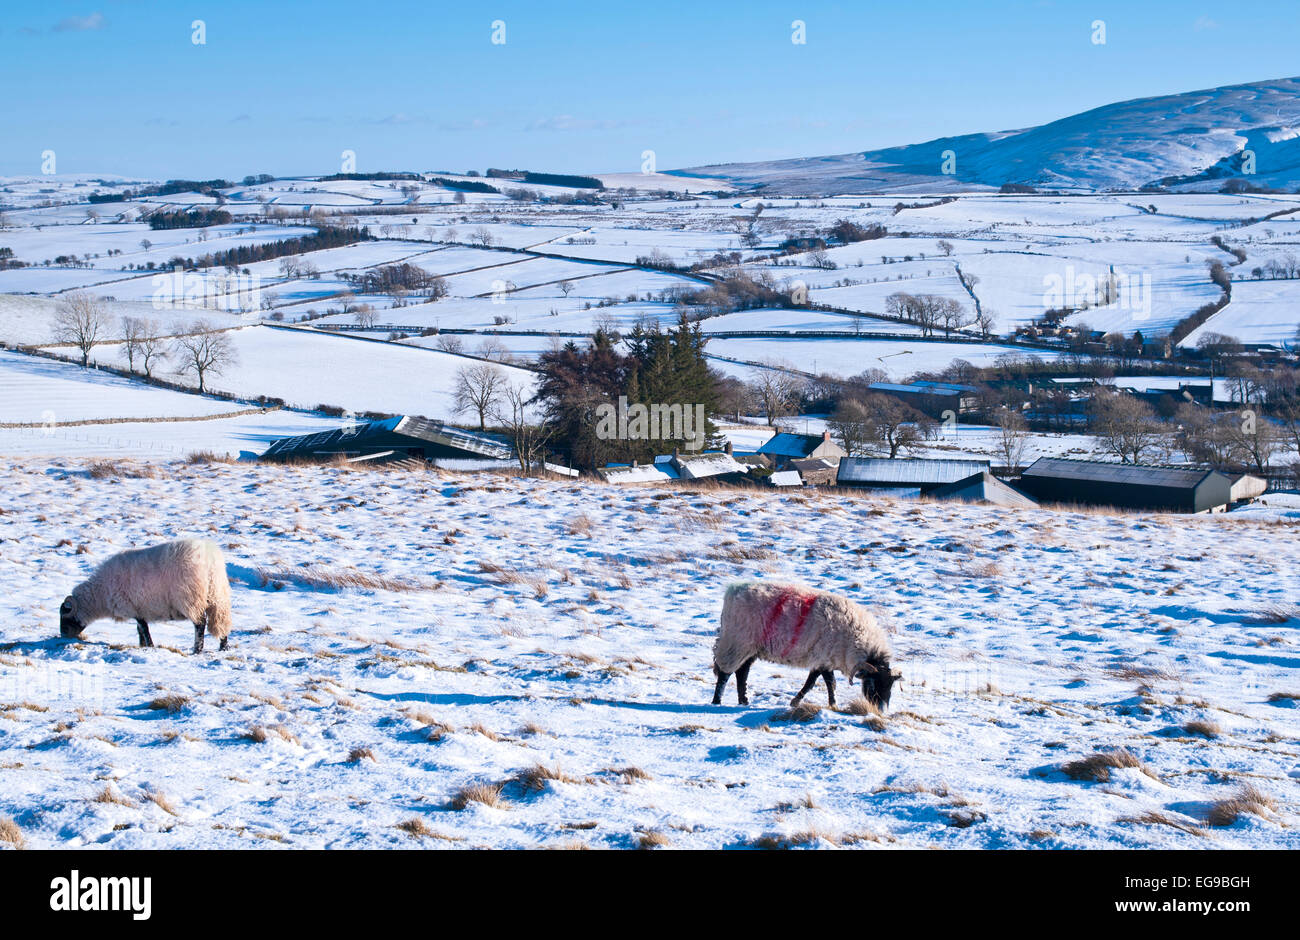 Sheep grazing in snow on high moorland pasture on the Northern fells near Caldbeck, Lake District, Cumbria, England - Stock Image